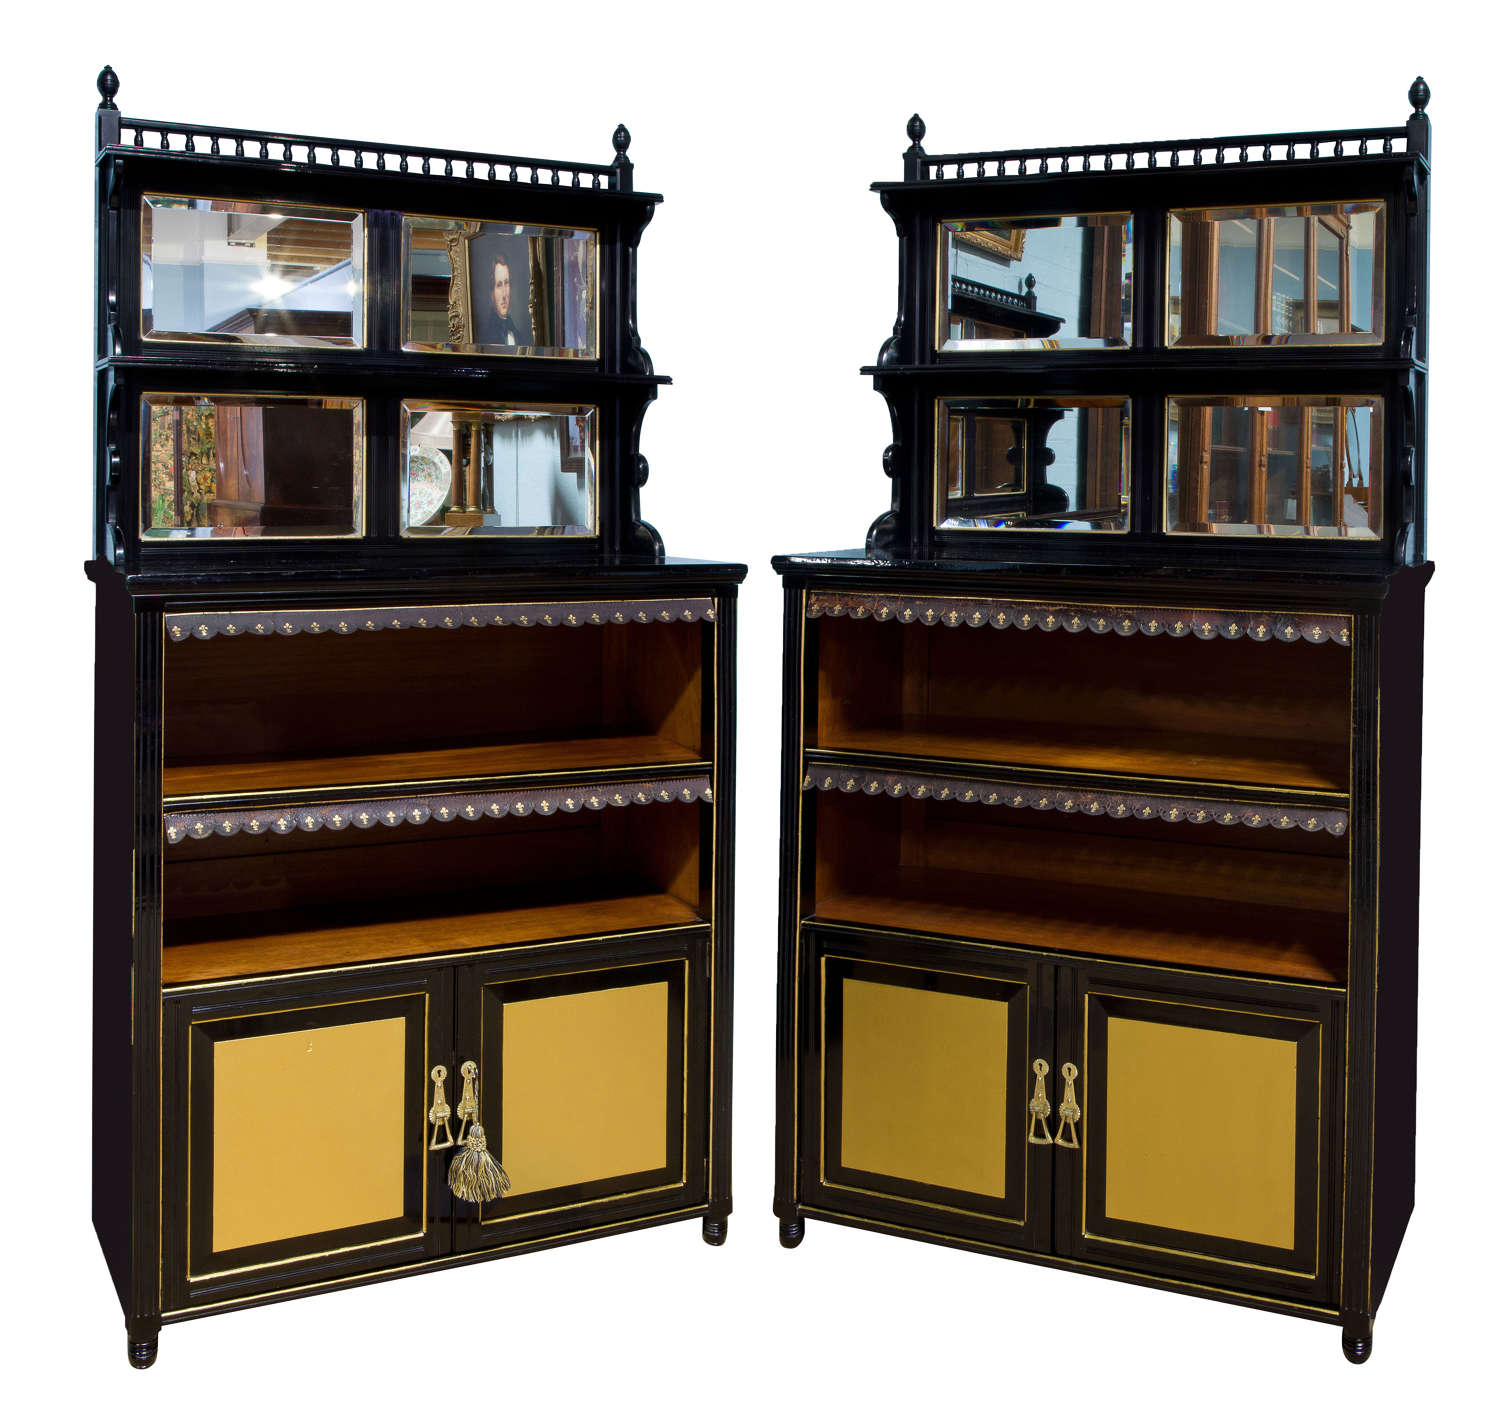 Pair of Aesthetic Movement cabinets c1880